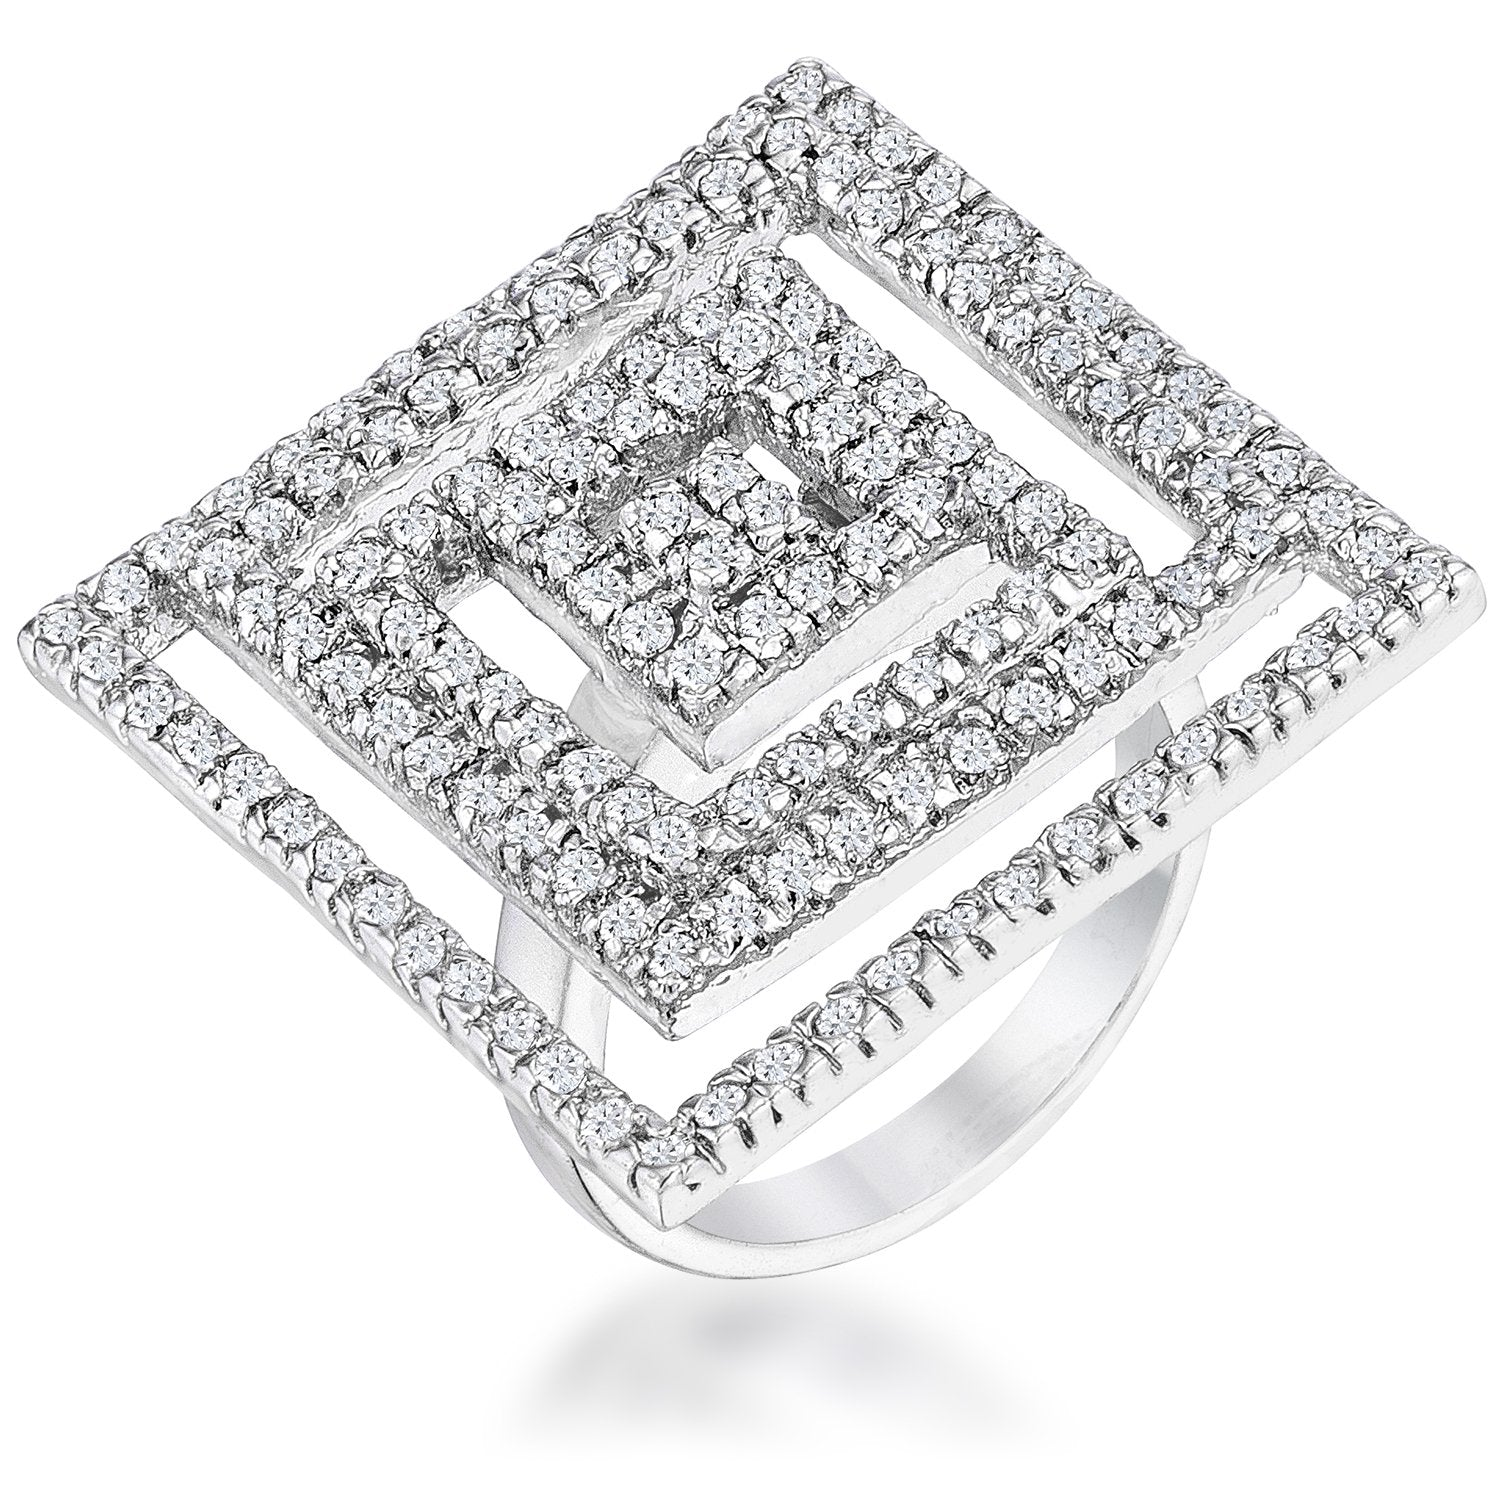 Cubic Zirconia Maze Cocktail Ring - R07608R-C01